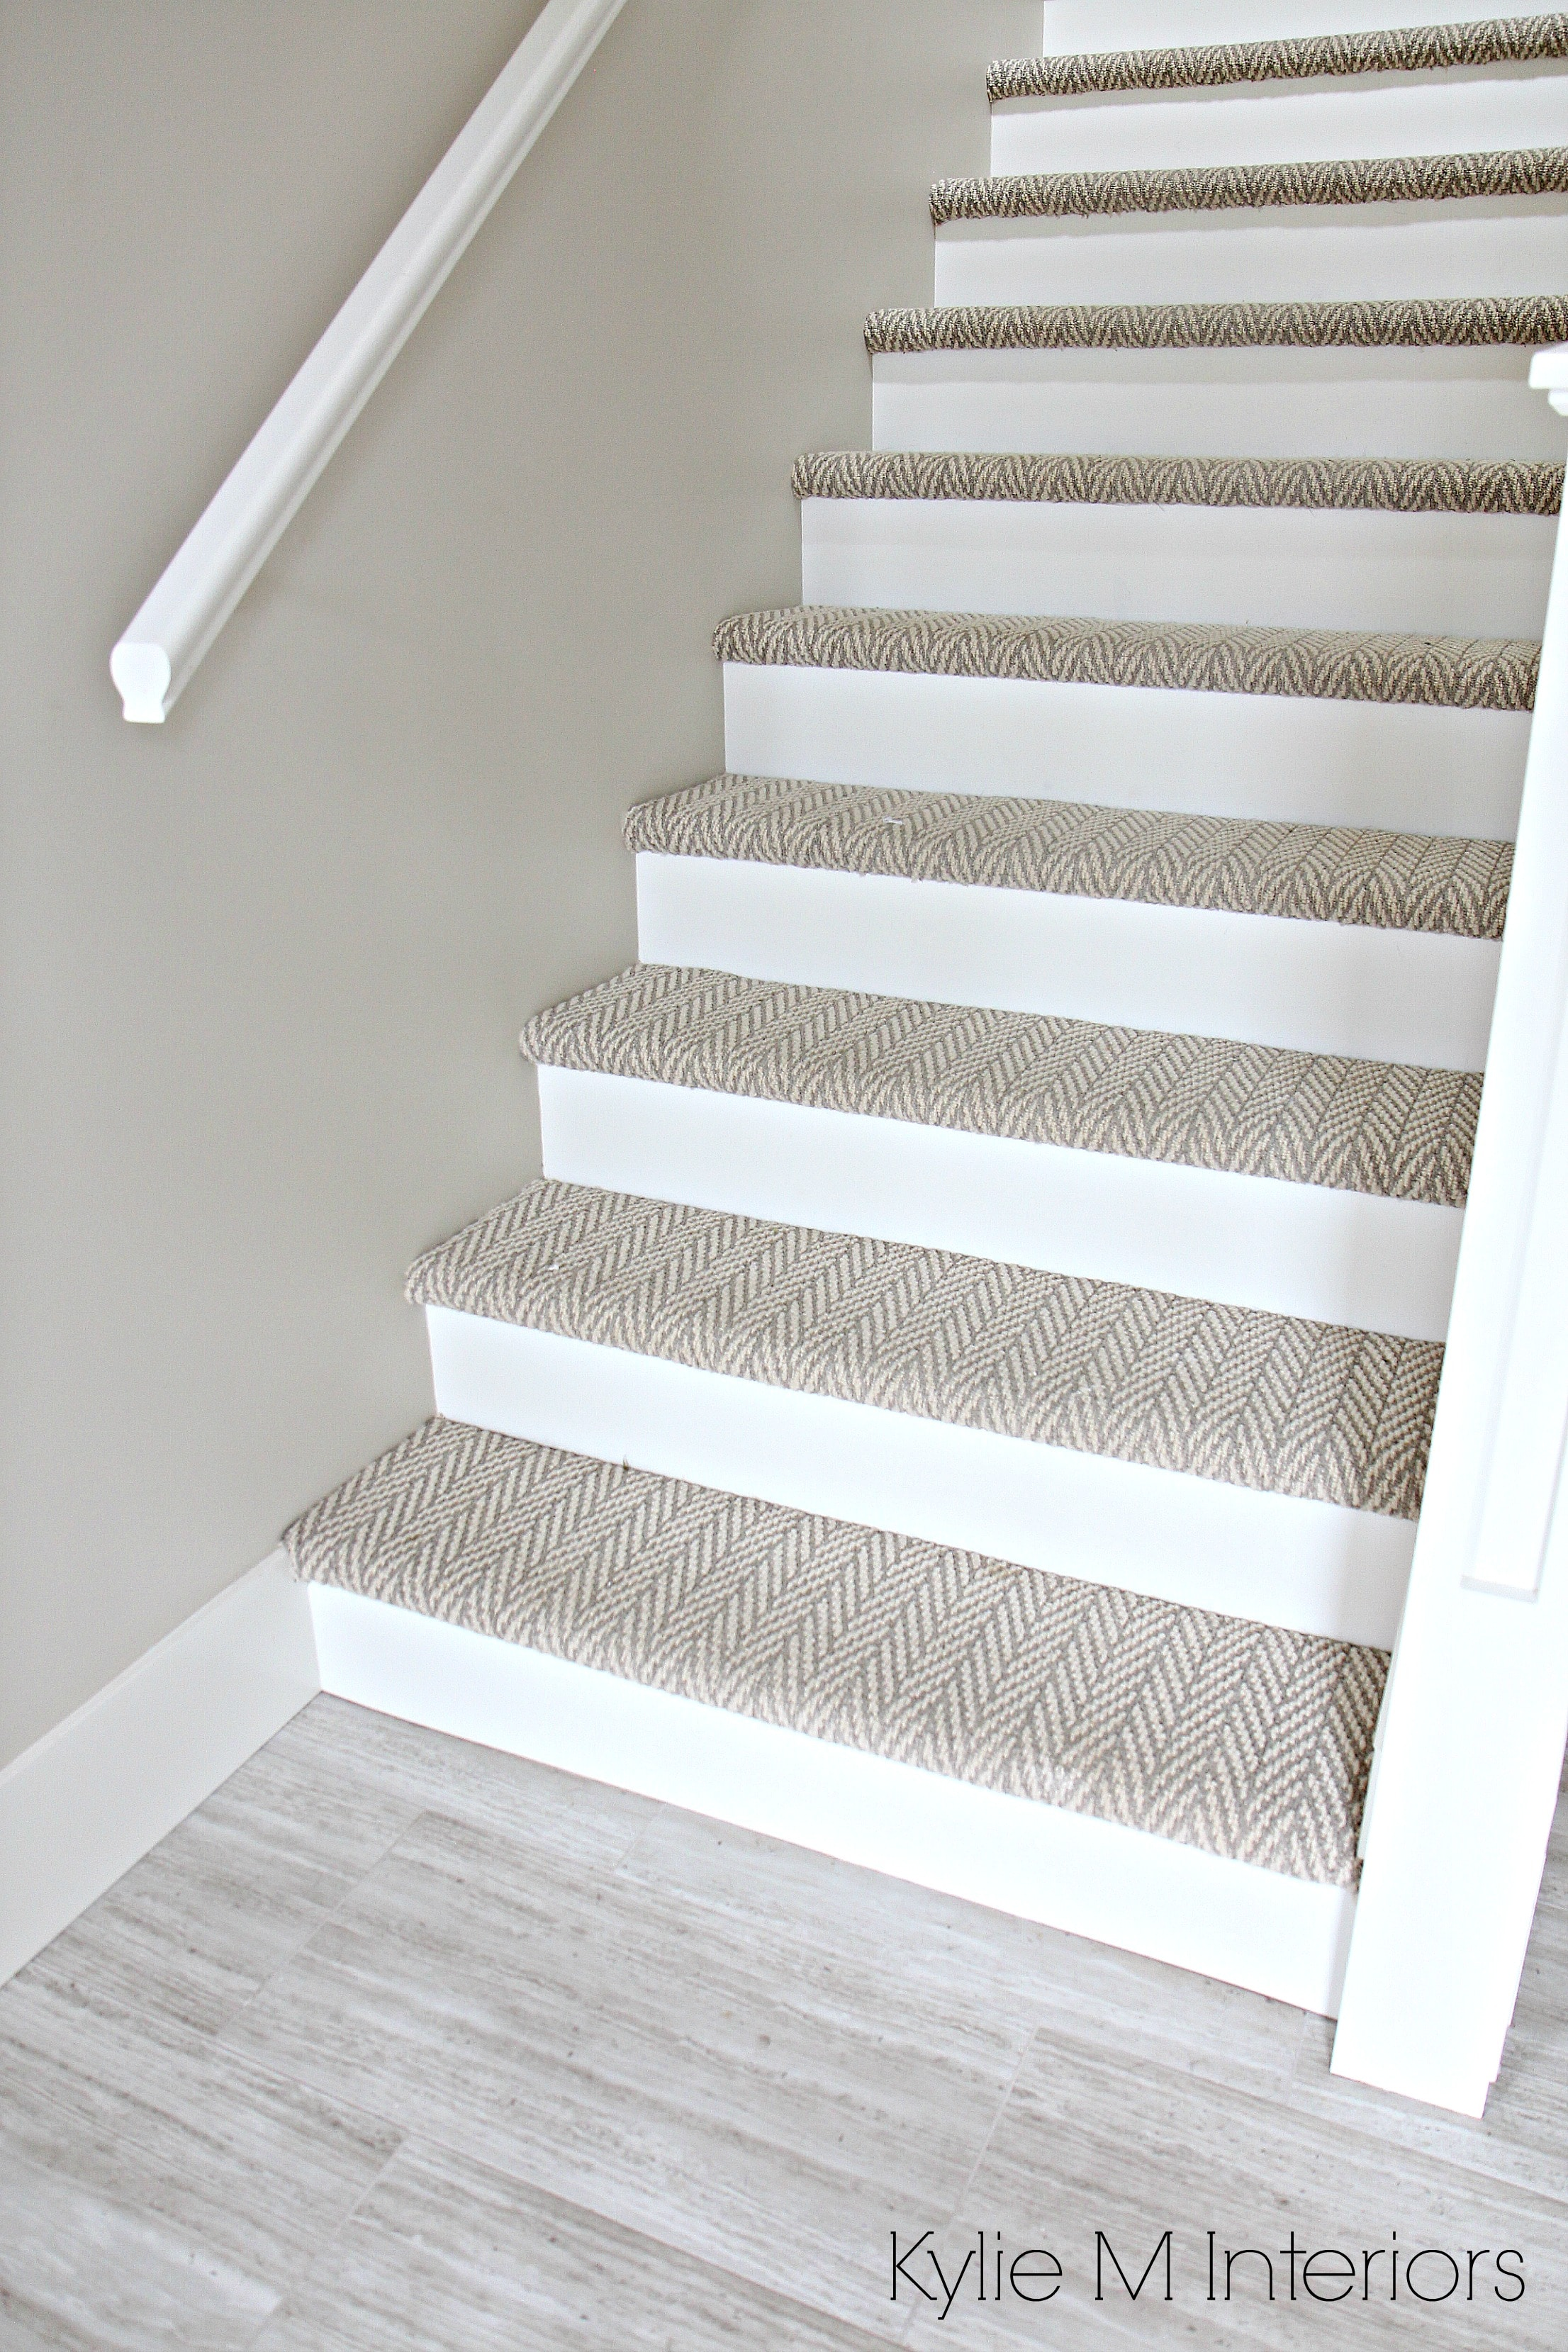 Stairs With Carpet Herringbone Treads And Painted White Risers